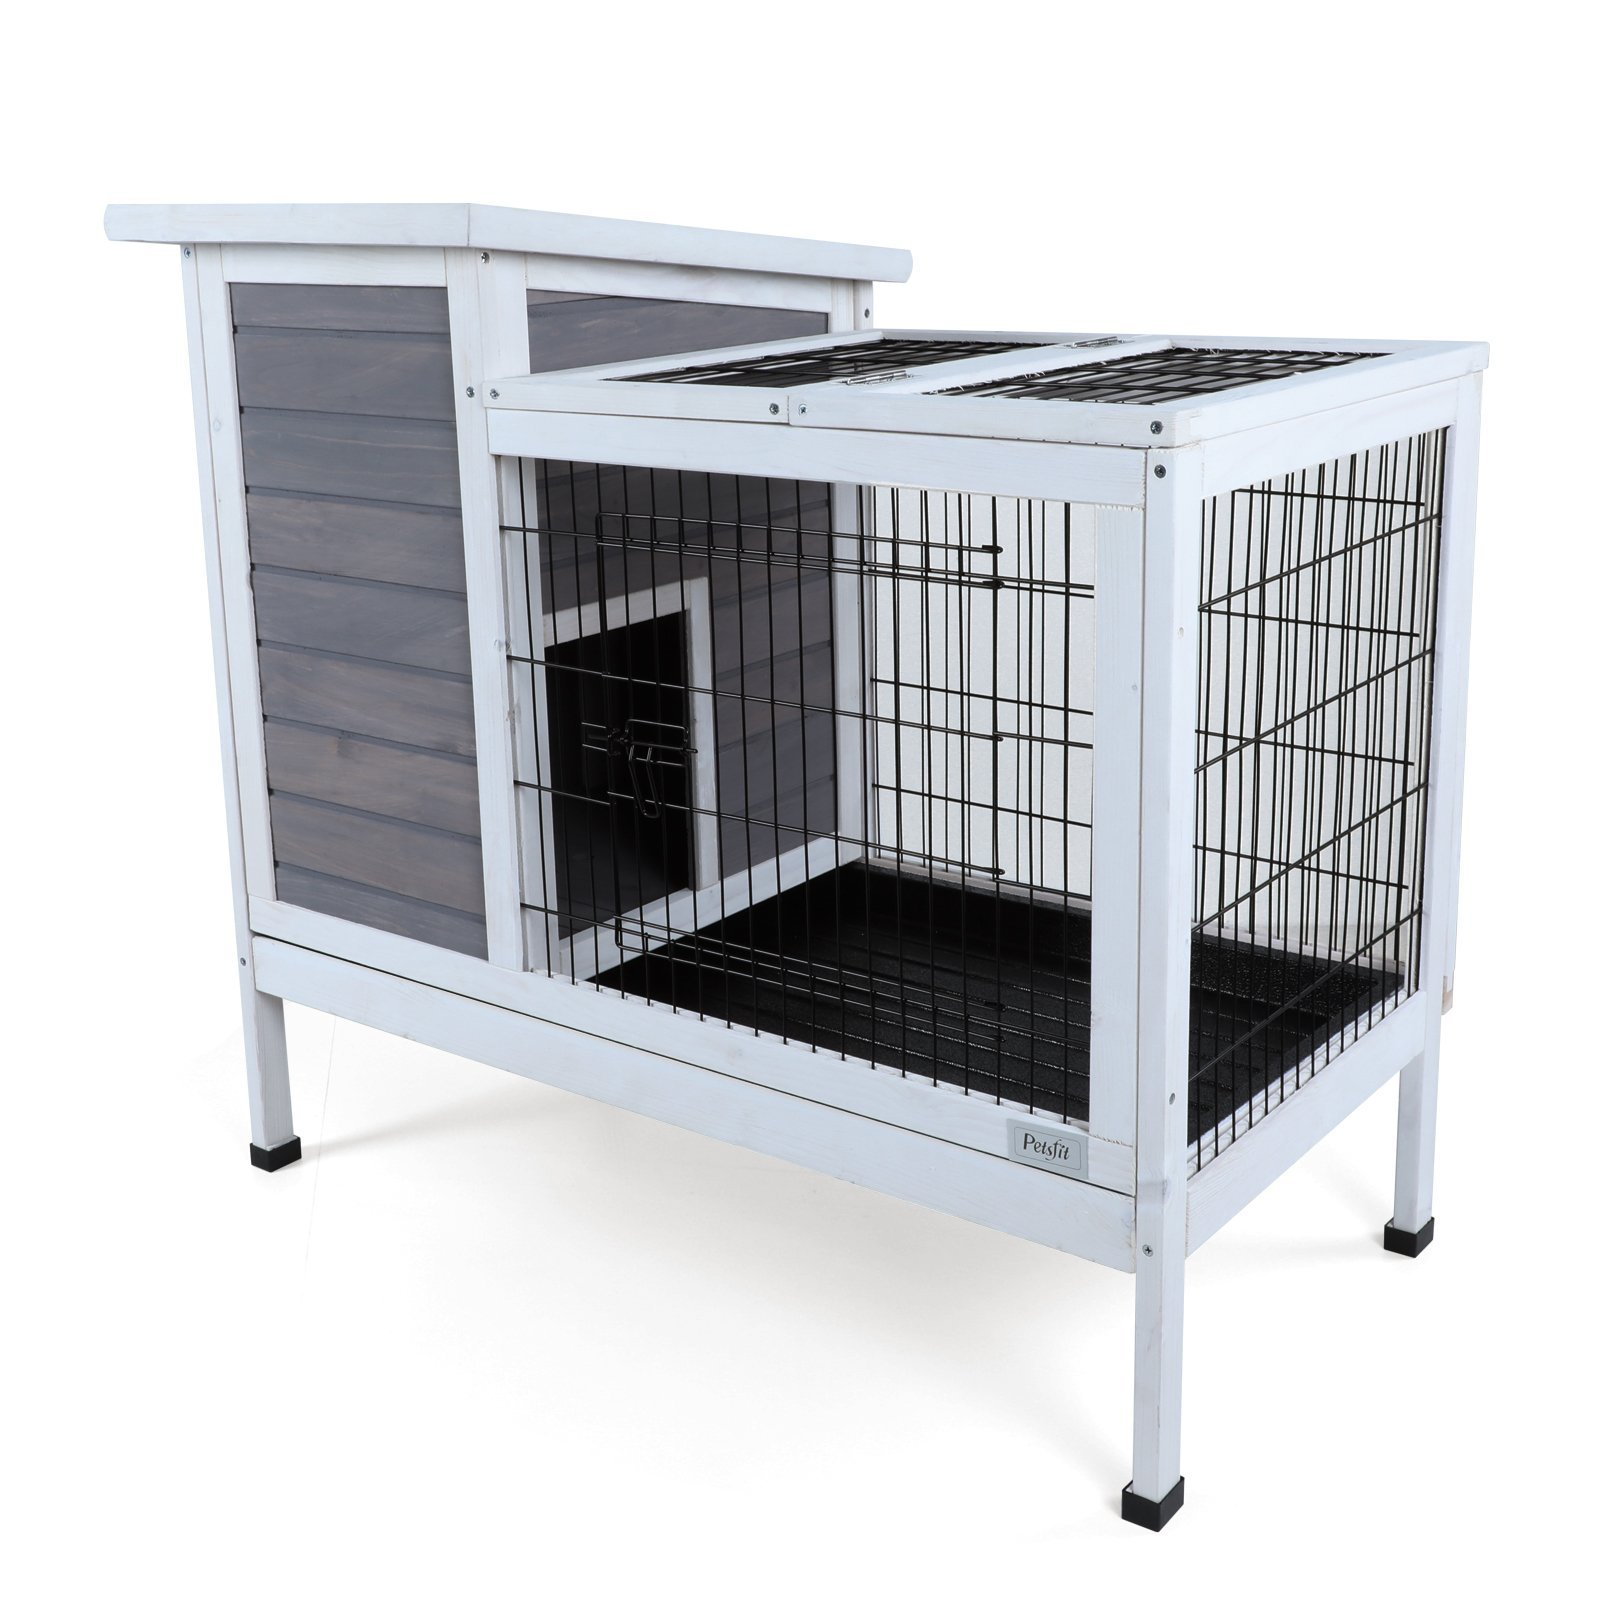 Petsfit Wood Rabbit Cage with Deeper Removable Tray, 1-Year Warranty by Petsfit